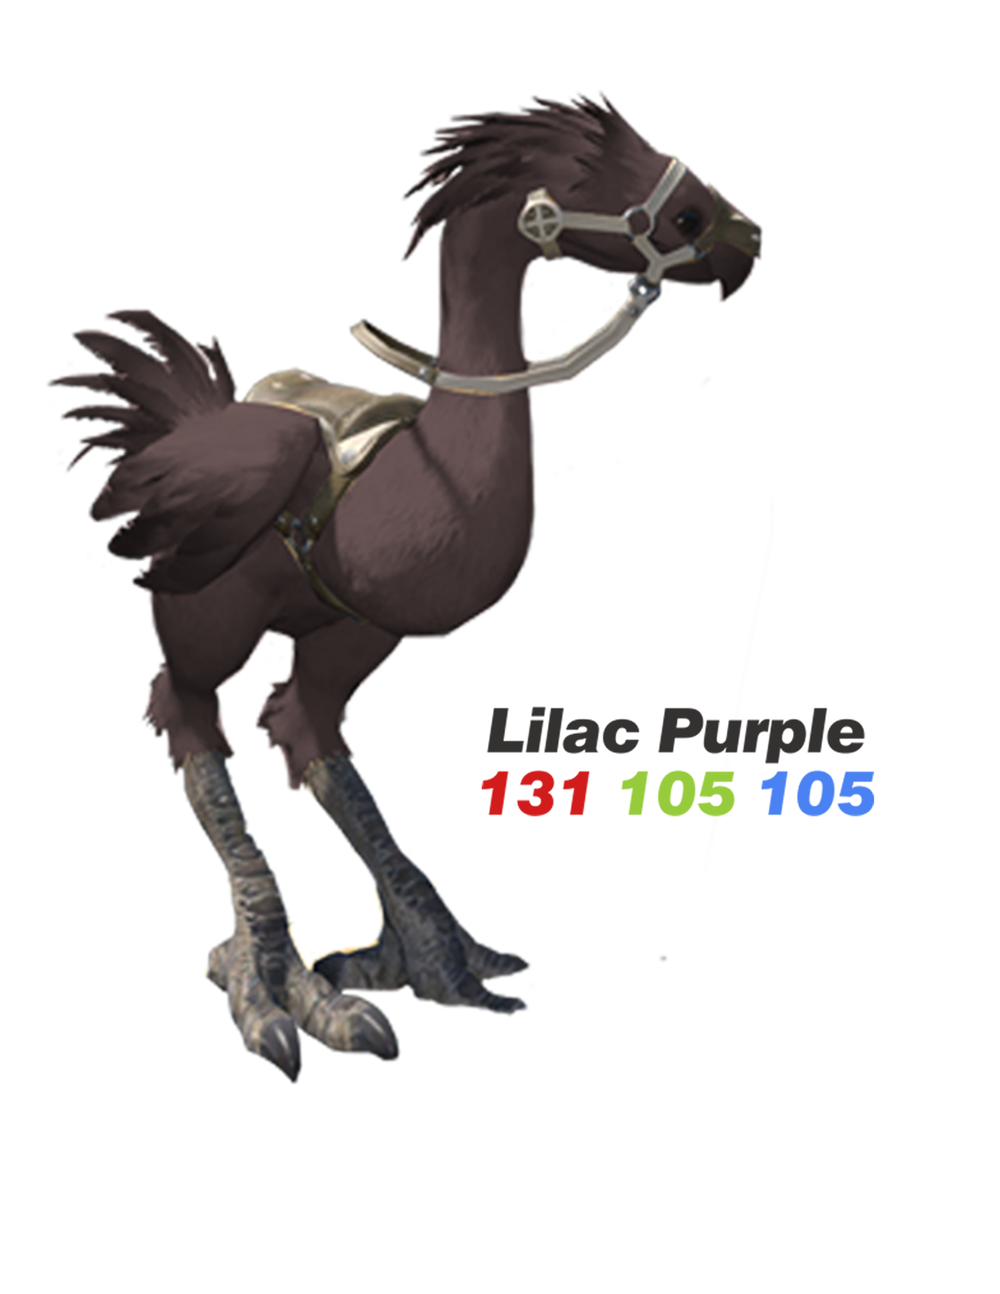 LilacPurple.png